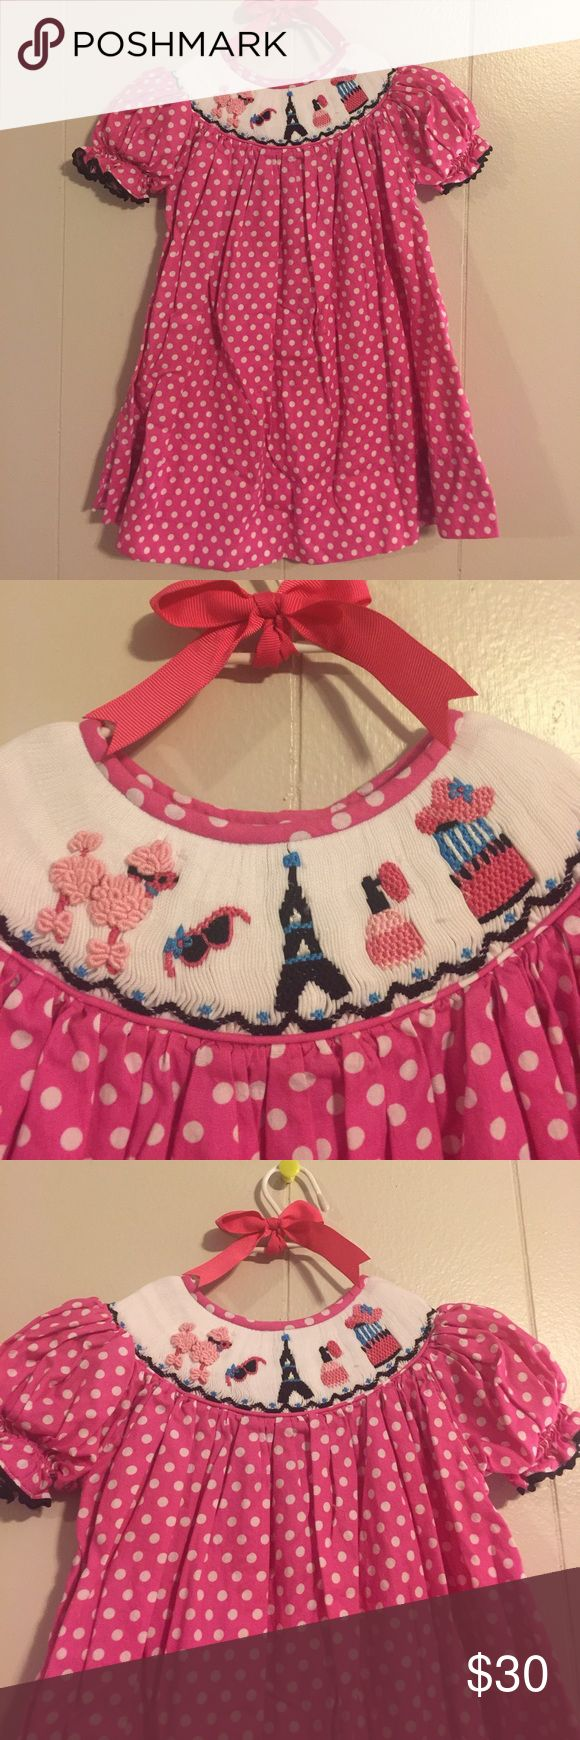 👛🐩Molly Pop Old Fashioned Embroidered dress🐩👛 Adorable with impeccable detail, this dress has SO much character. I hate to let it go. Excellent condition. No rips stains or tears. Practically new. 📚🖍✏️ALL PROCEEDS GOT TO SAVING FOR PRIVATE PRESCHOOL EDUCATION📚✏️🖍 Molly Pop Dresses Formal